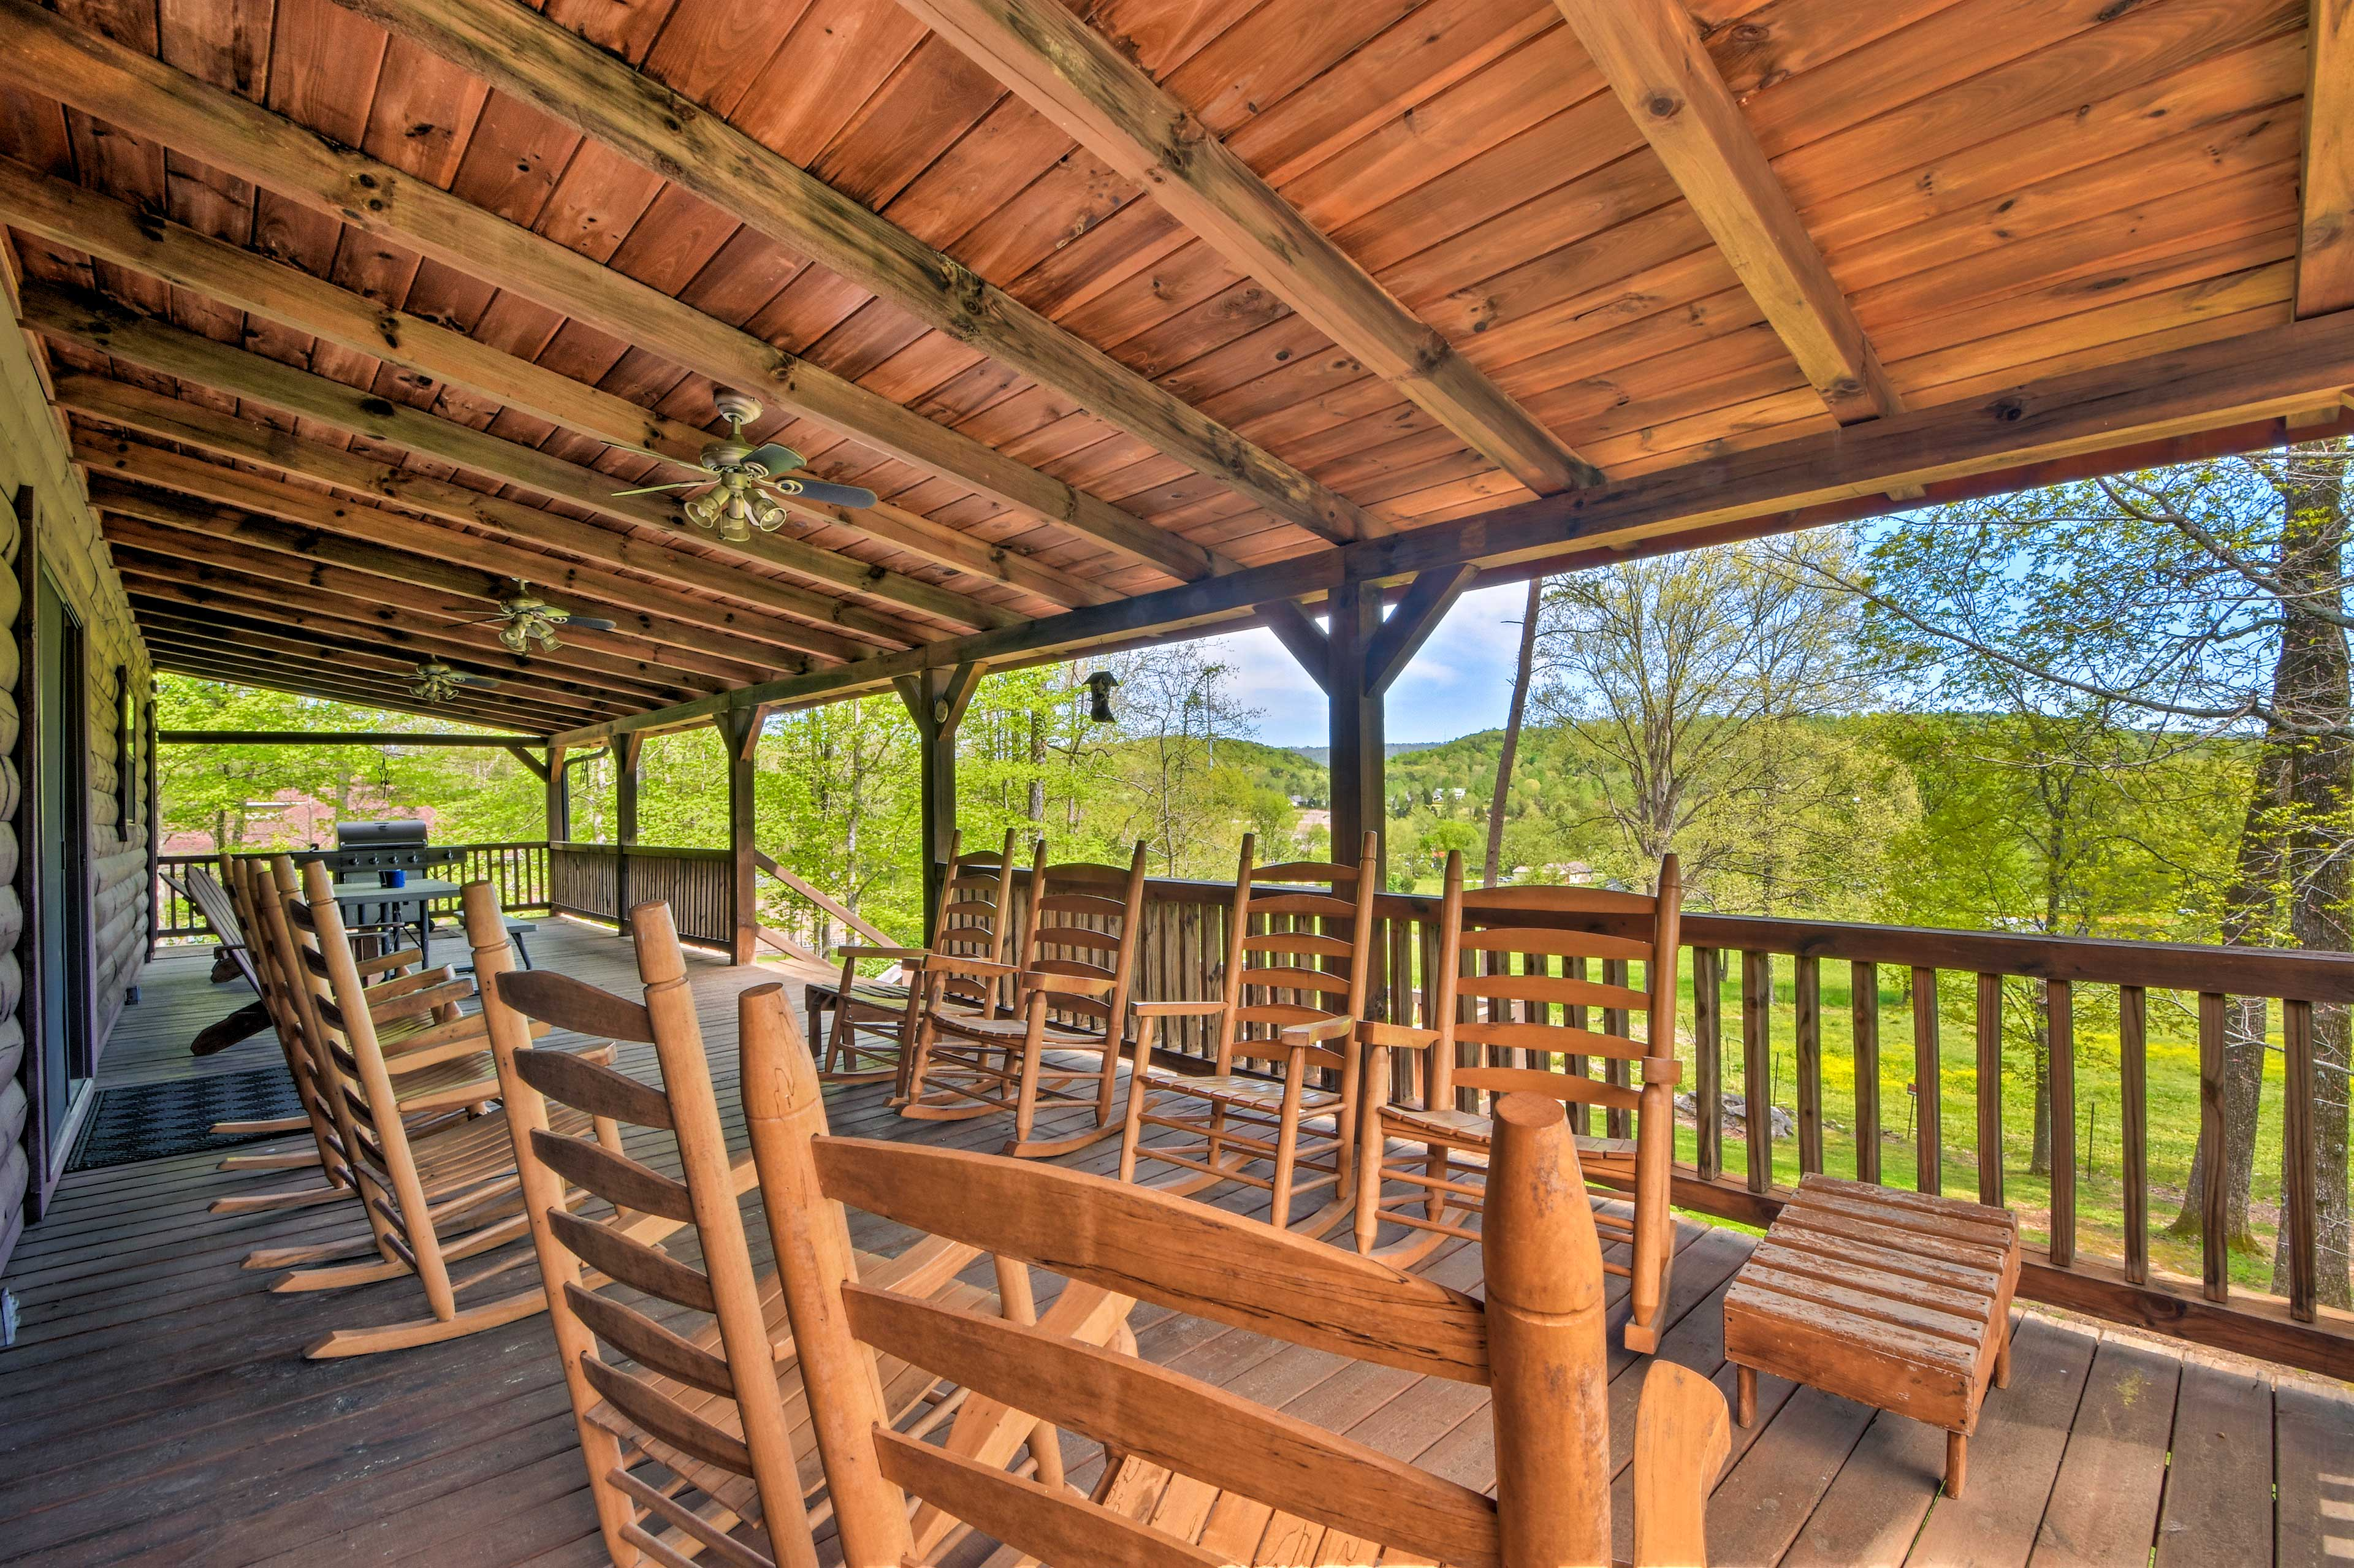 Covered Deck   Gas Grill   Rocking Chairs